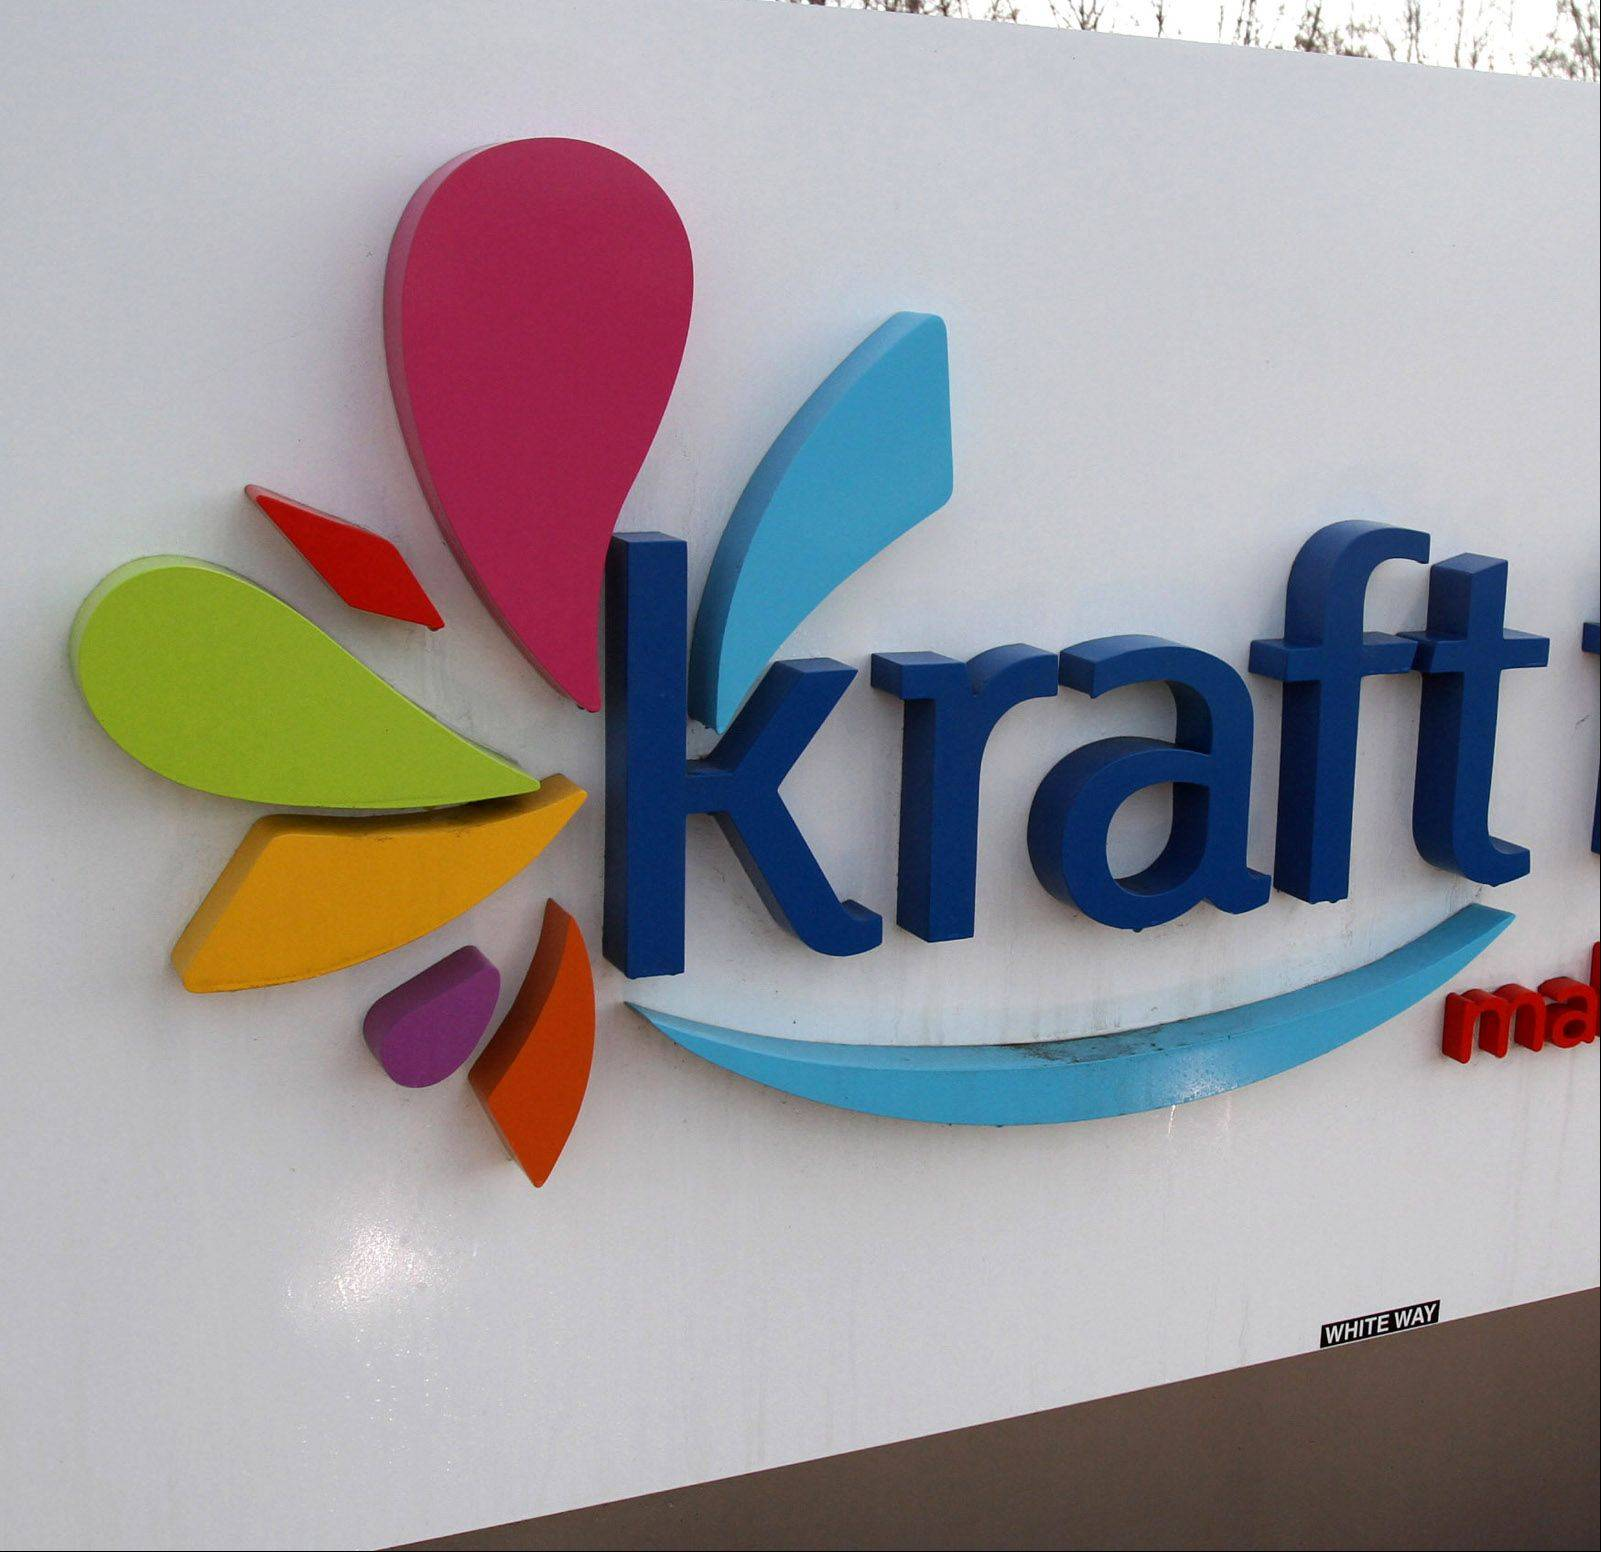 Northfield-based Kraft Foods expects fourth-quarter adjusted earnings above analysts� current estimates, but foresees lower revenue than a year ago.